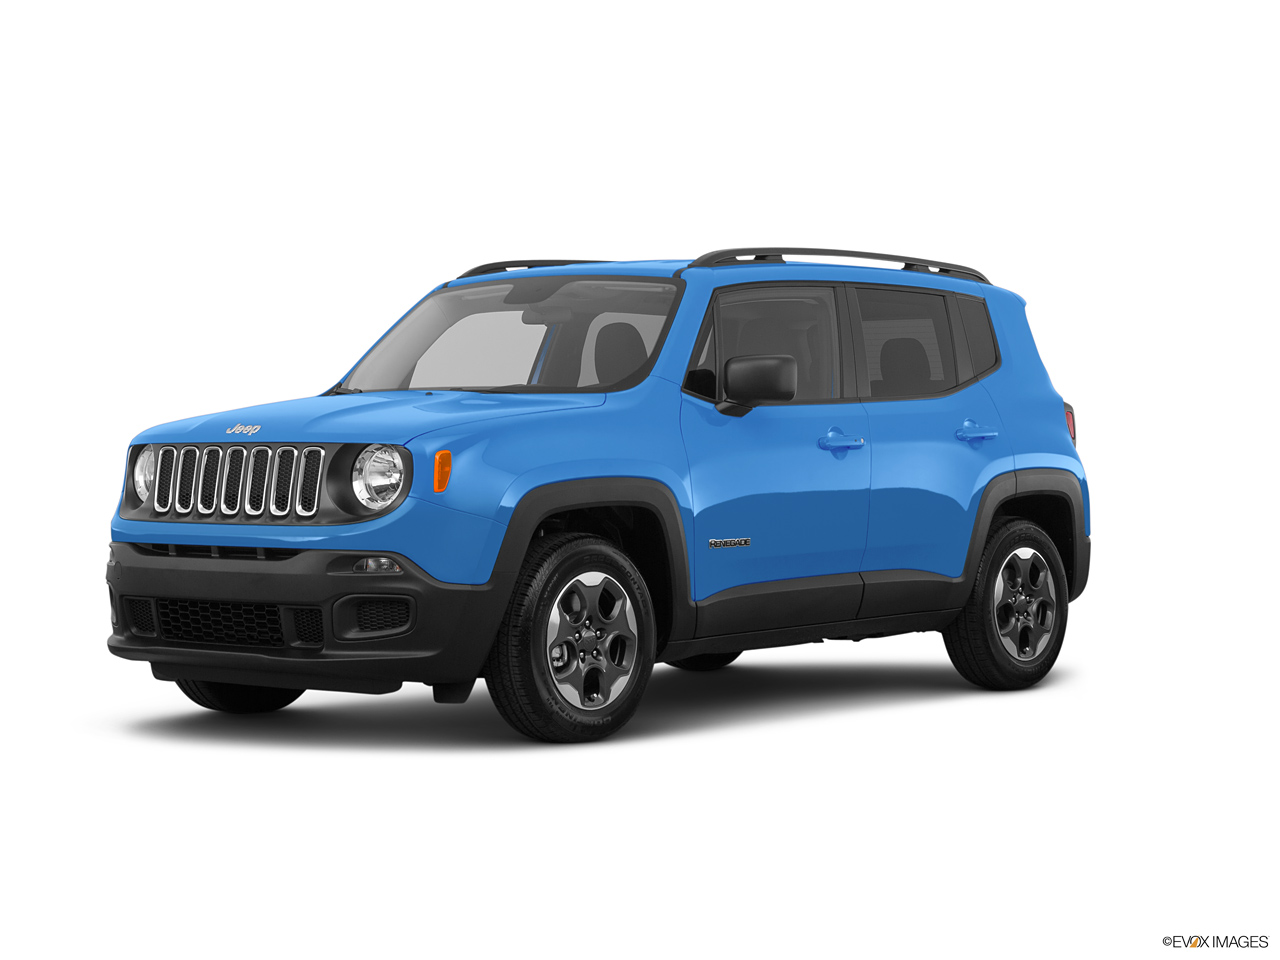 2017 Jeep Grand Cherokee Seating Capacity >> Jeep Renegade 2017 2.4L Sport 4x2 in Bahrain: New Car Prices, Specs, Reviews & Photos | YallaMotor